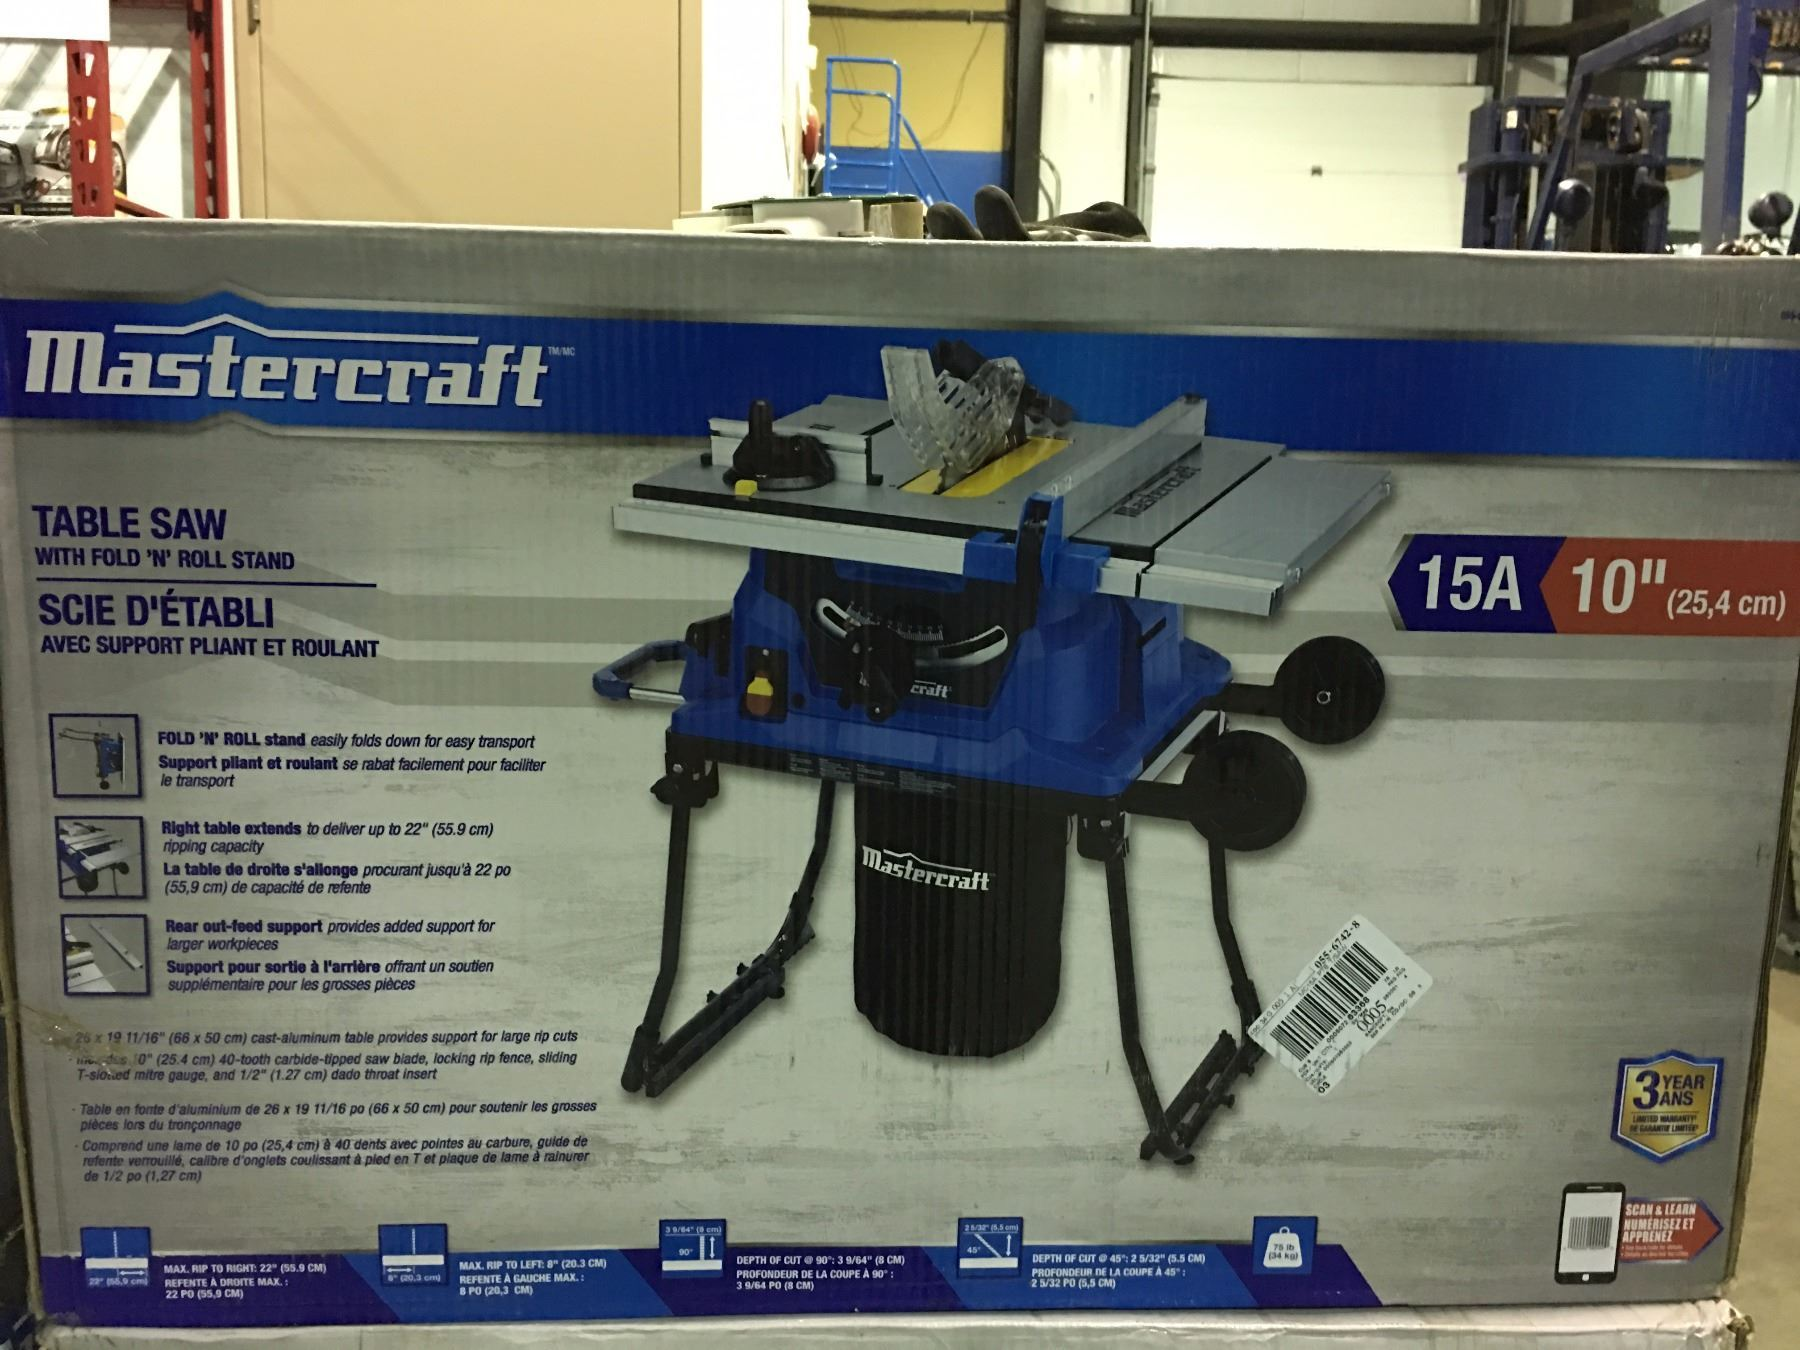 Mastercraft 10 table saw with fold roll stand image 1 mastercraft 10 table saw with fold roll stand greentooth